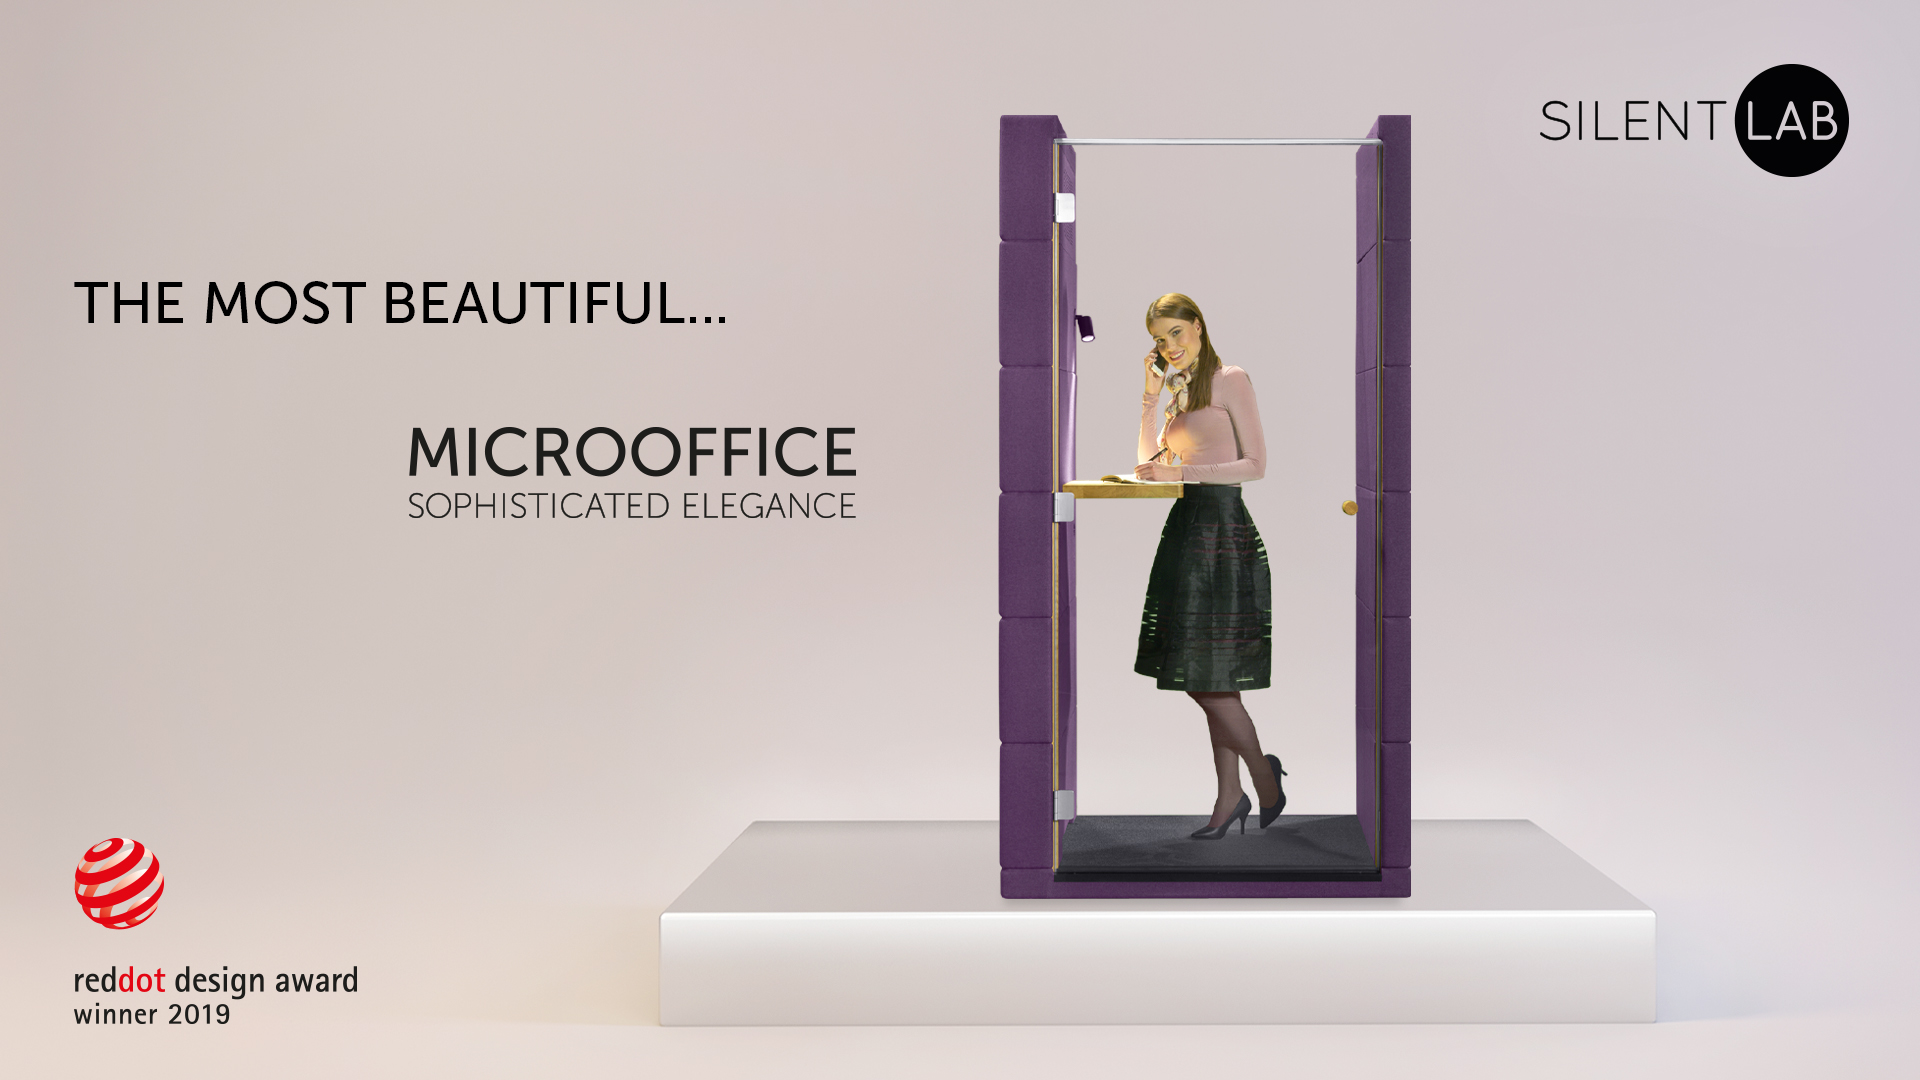 Microoffice by SilentLab - Now on pCon